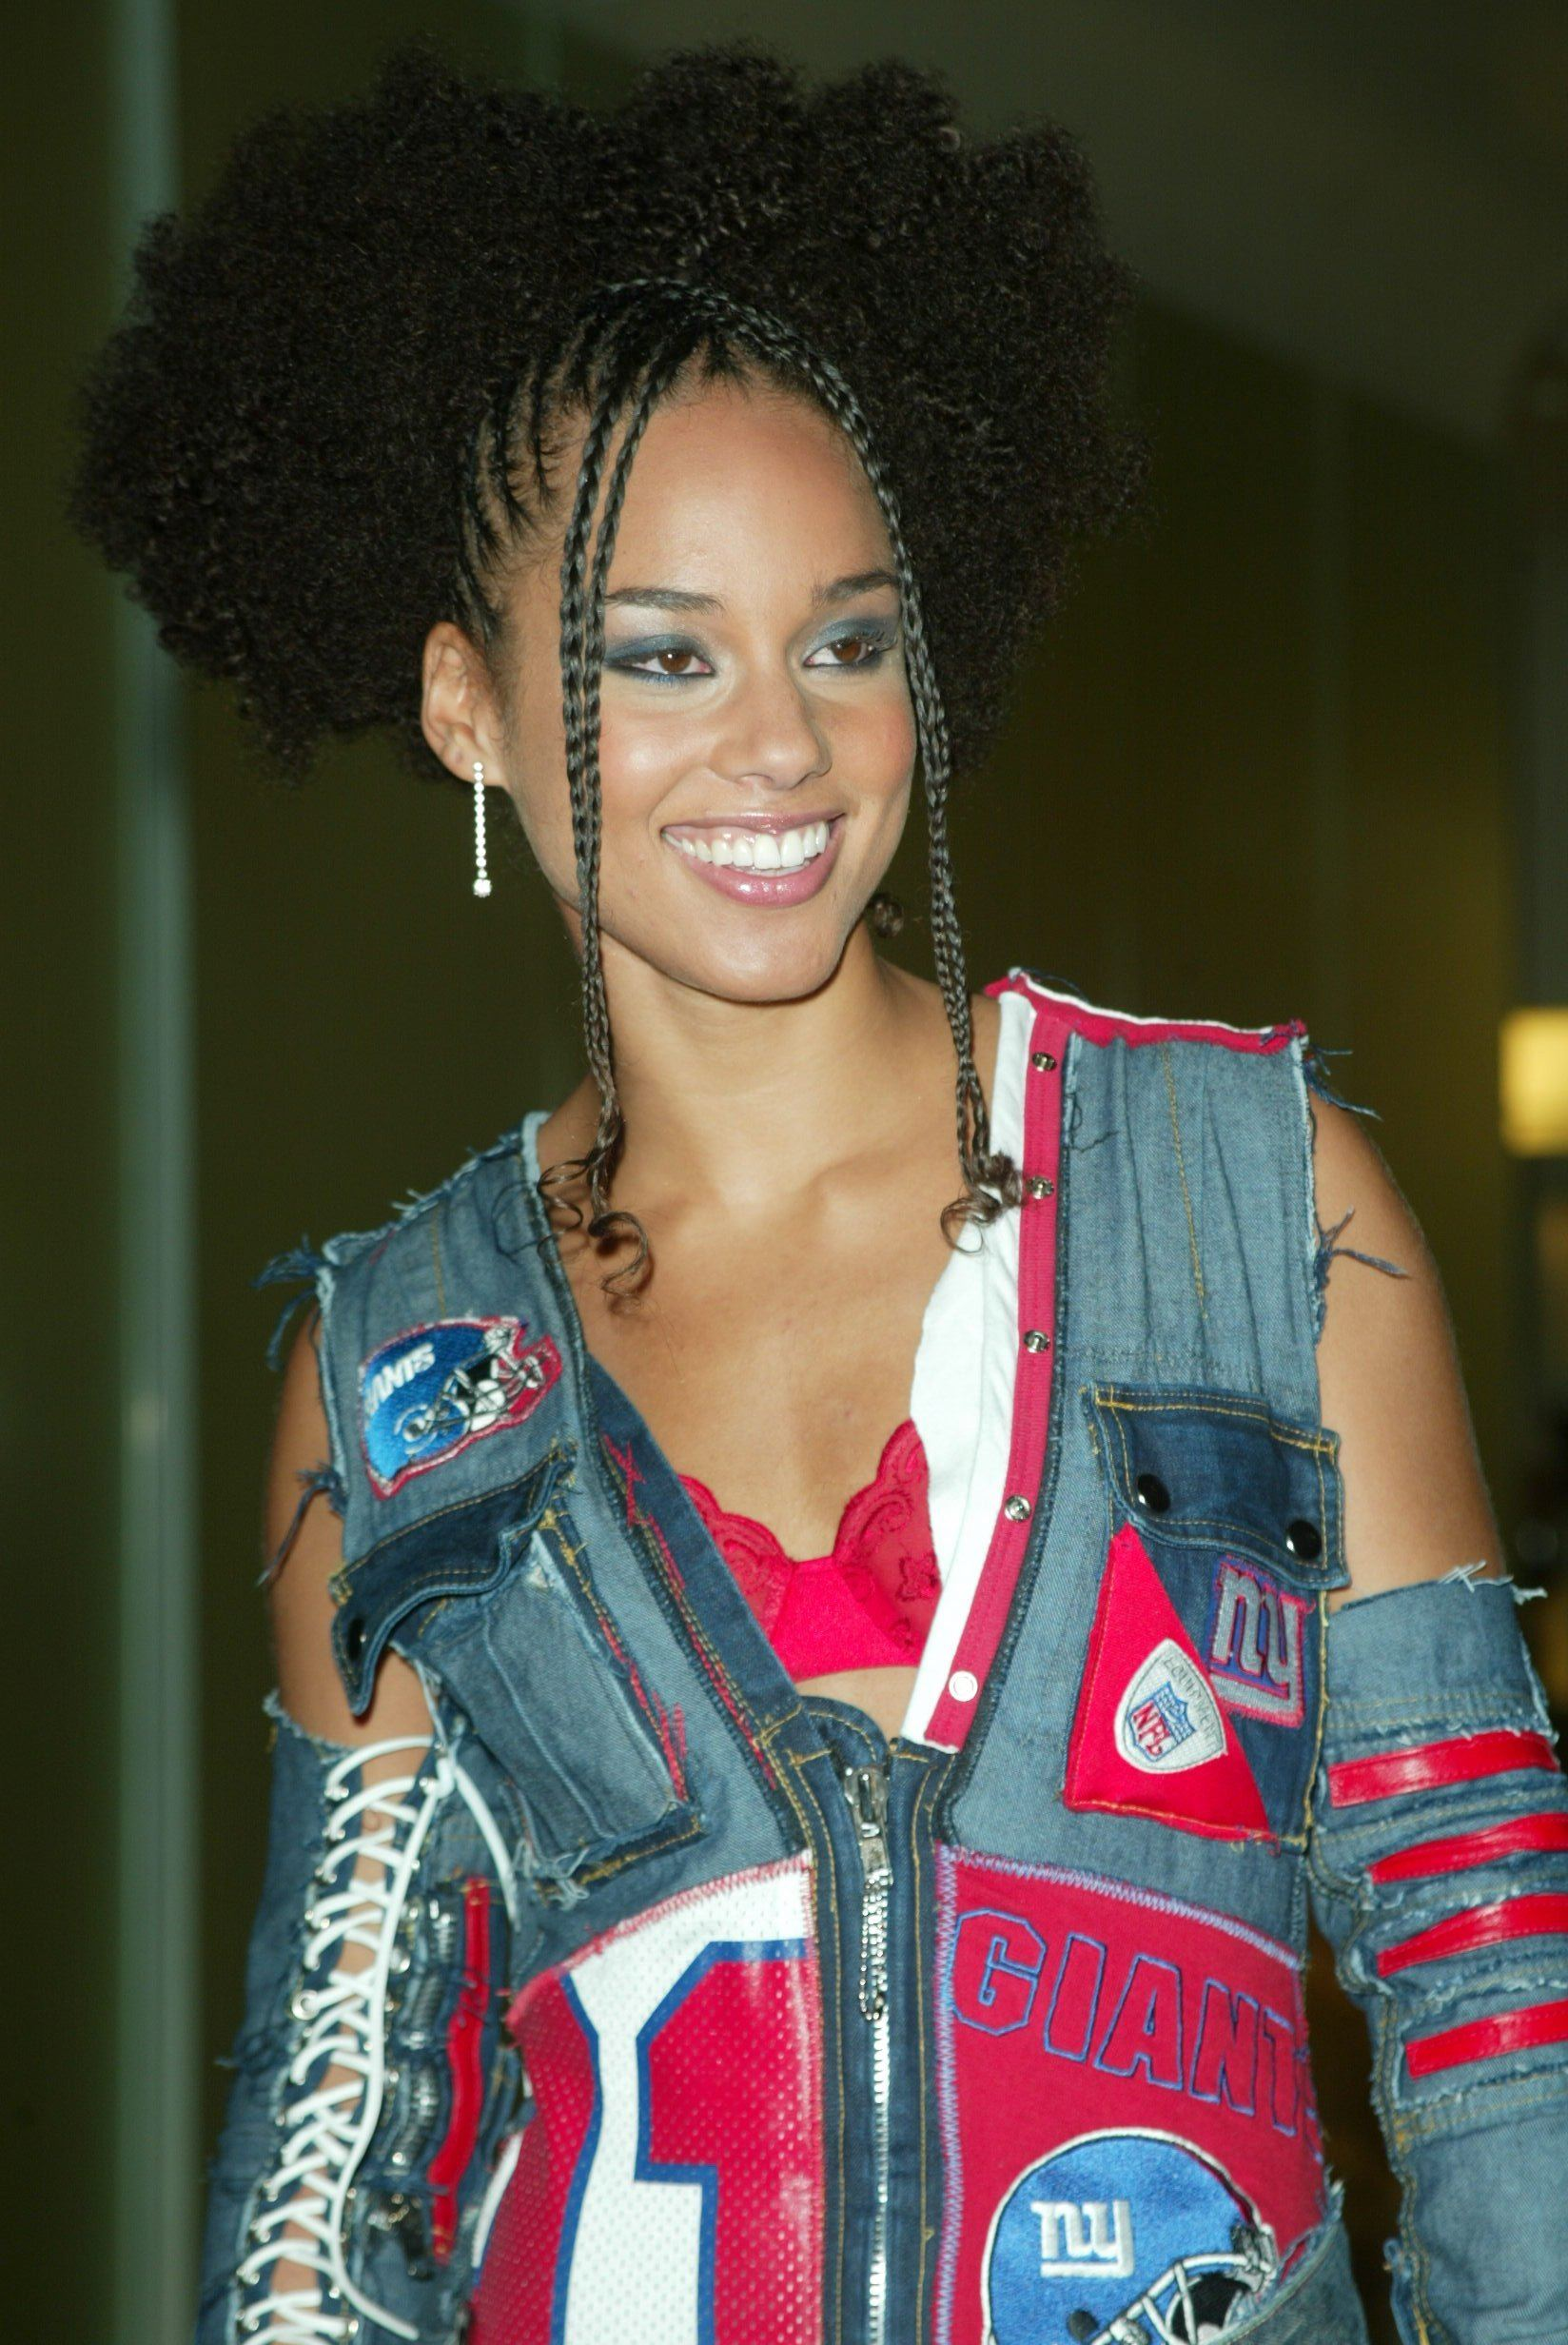 Alicia Keys At A Boutique Opening In 2002 With Half Braids Afro Look